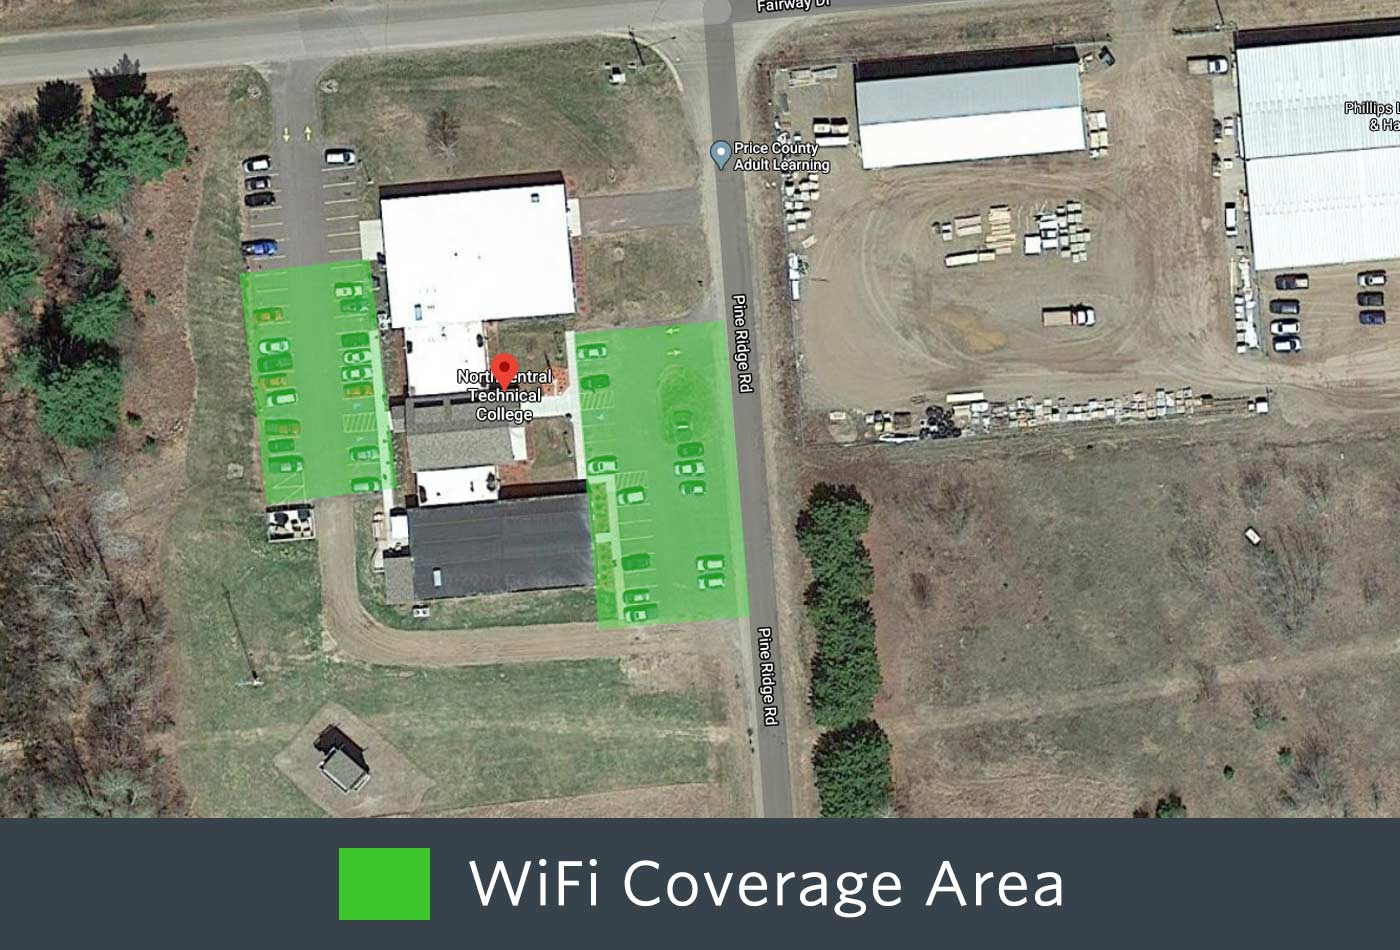 Outdoor WiFi coverage of the front of the Phillips Campus